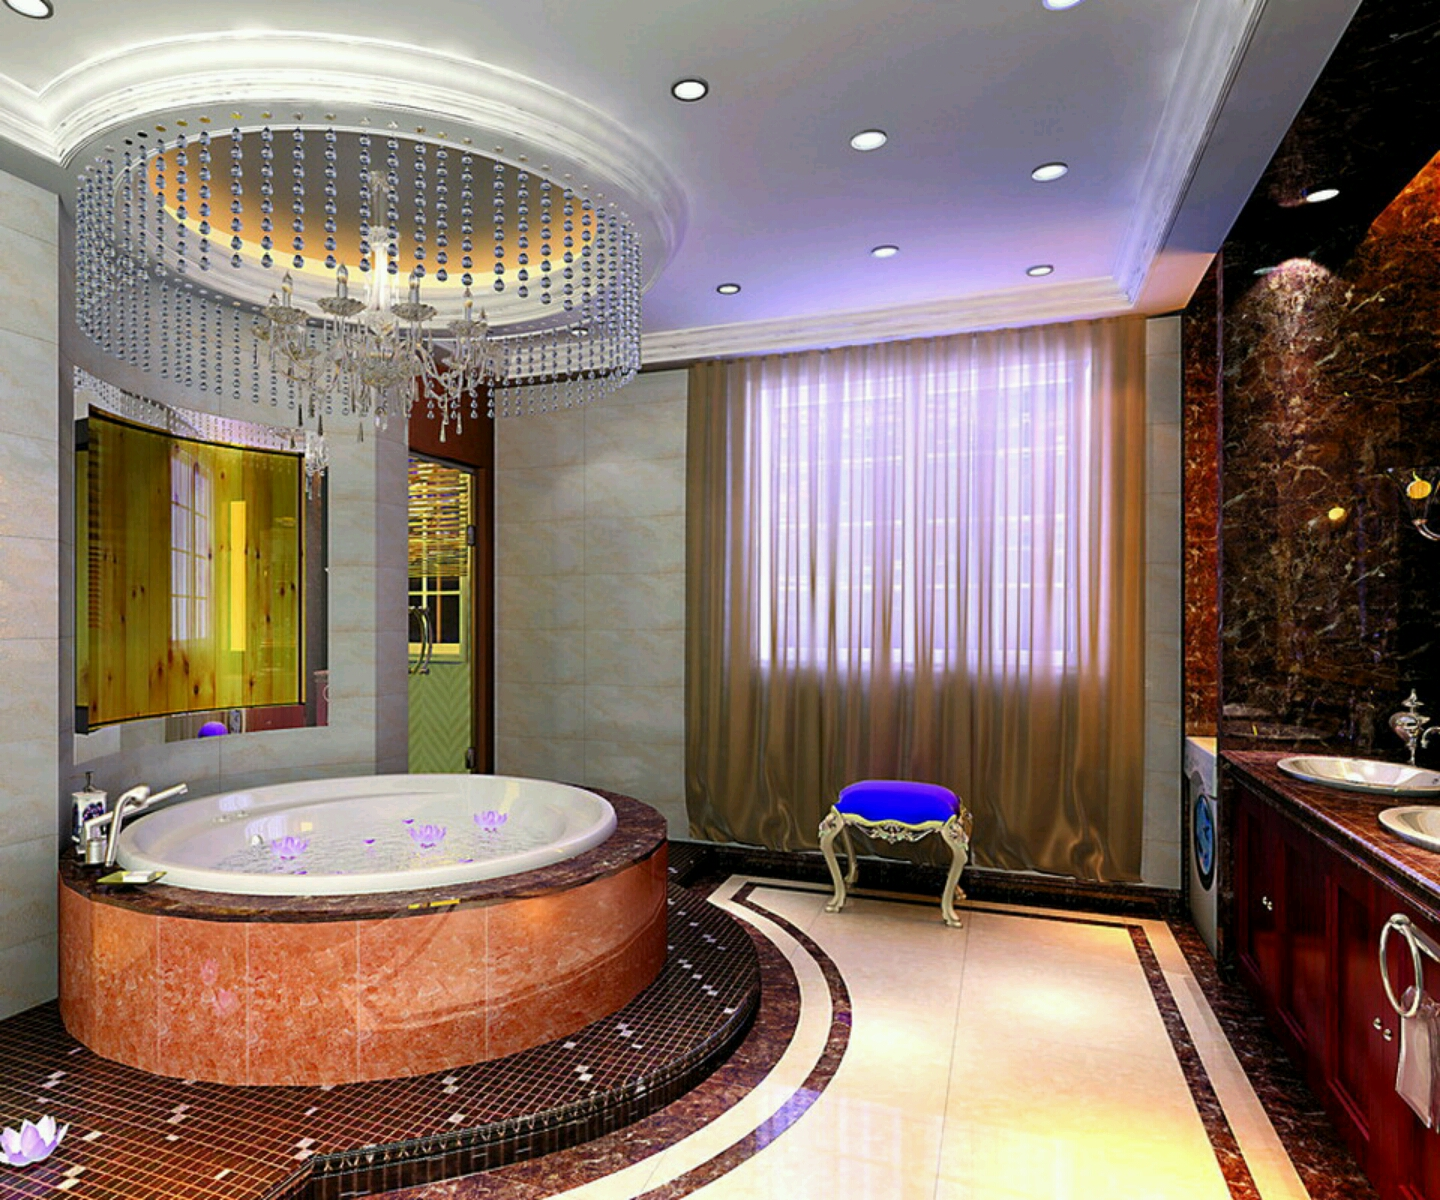 Home Design Ideas Bathroom: New Home Designs Latest.: Luxury Bathrooms Designs Ideas